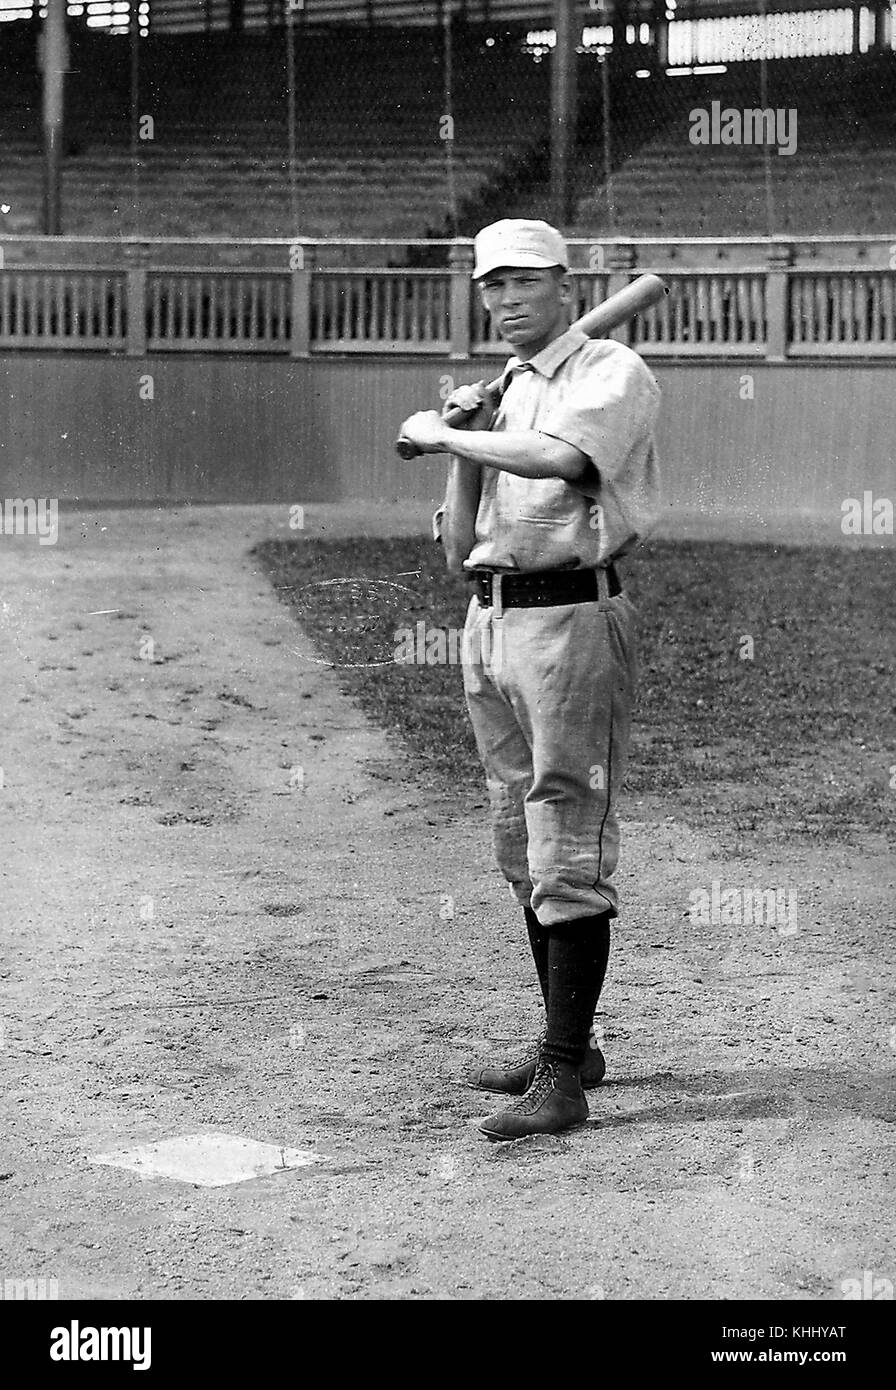 A full length portrait photograph of Denny Lyons, he is wearing a baseball uniform and holding a bat, he played - Stock Image